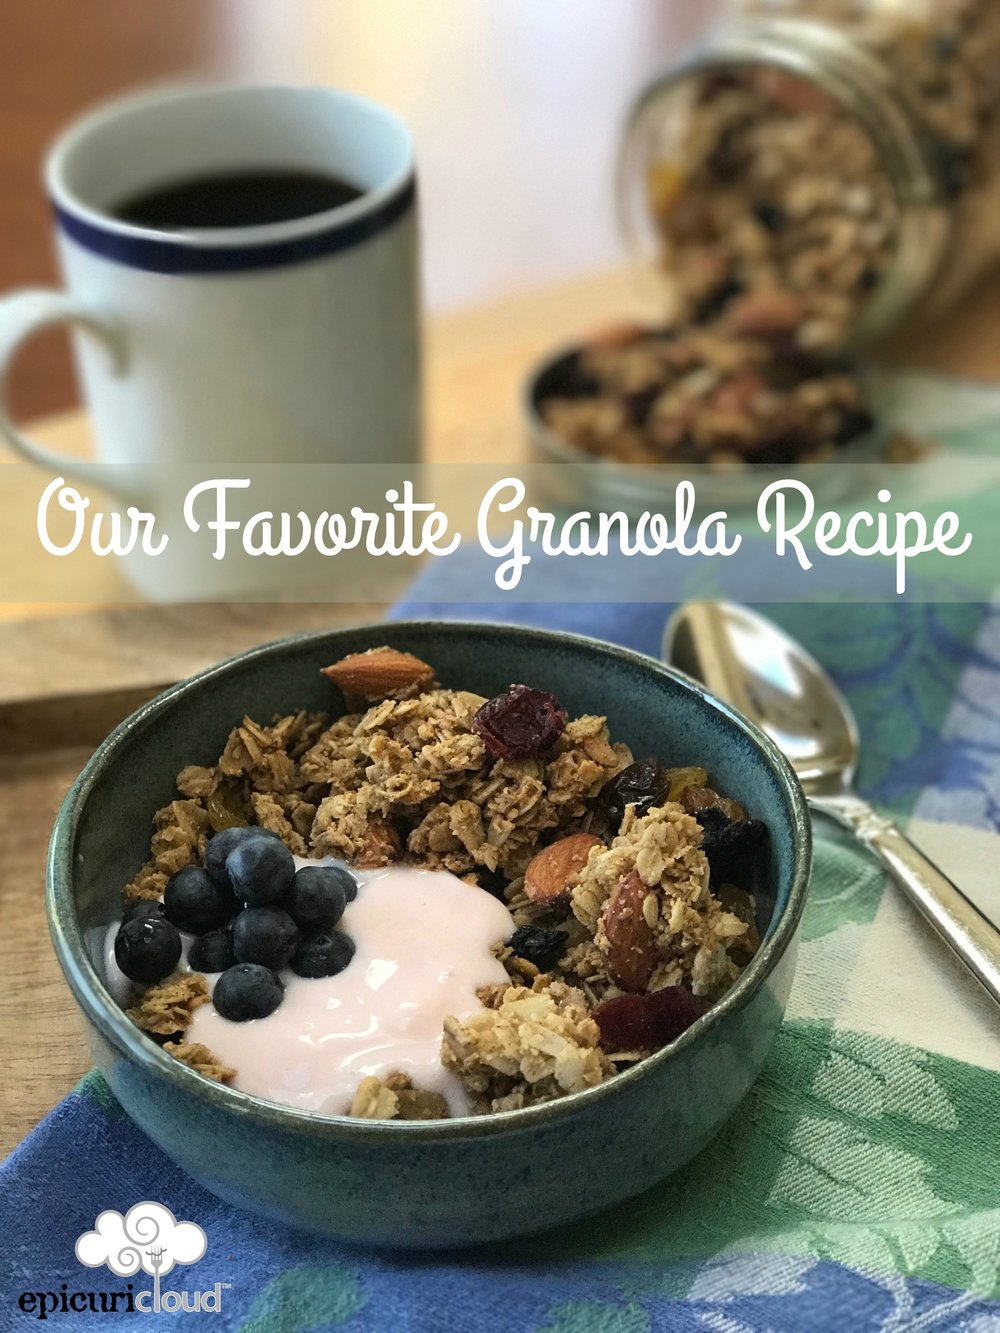 Our Favorite Granola Recipe - epicuricloud